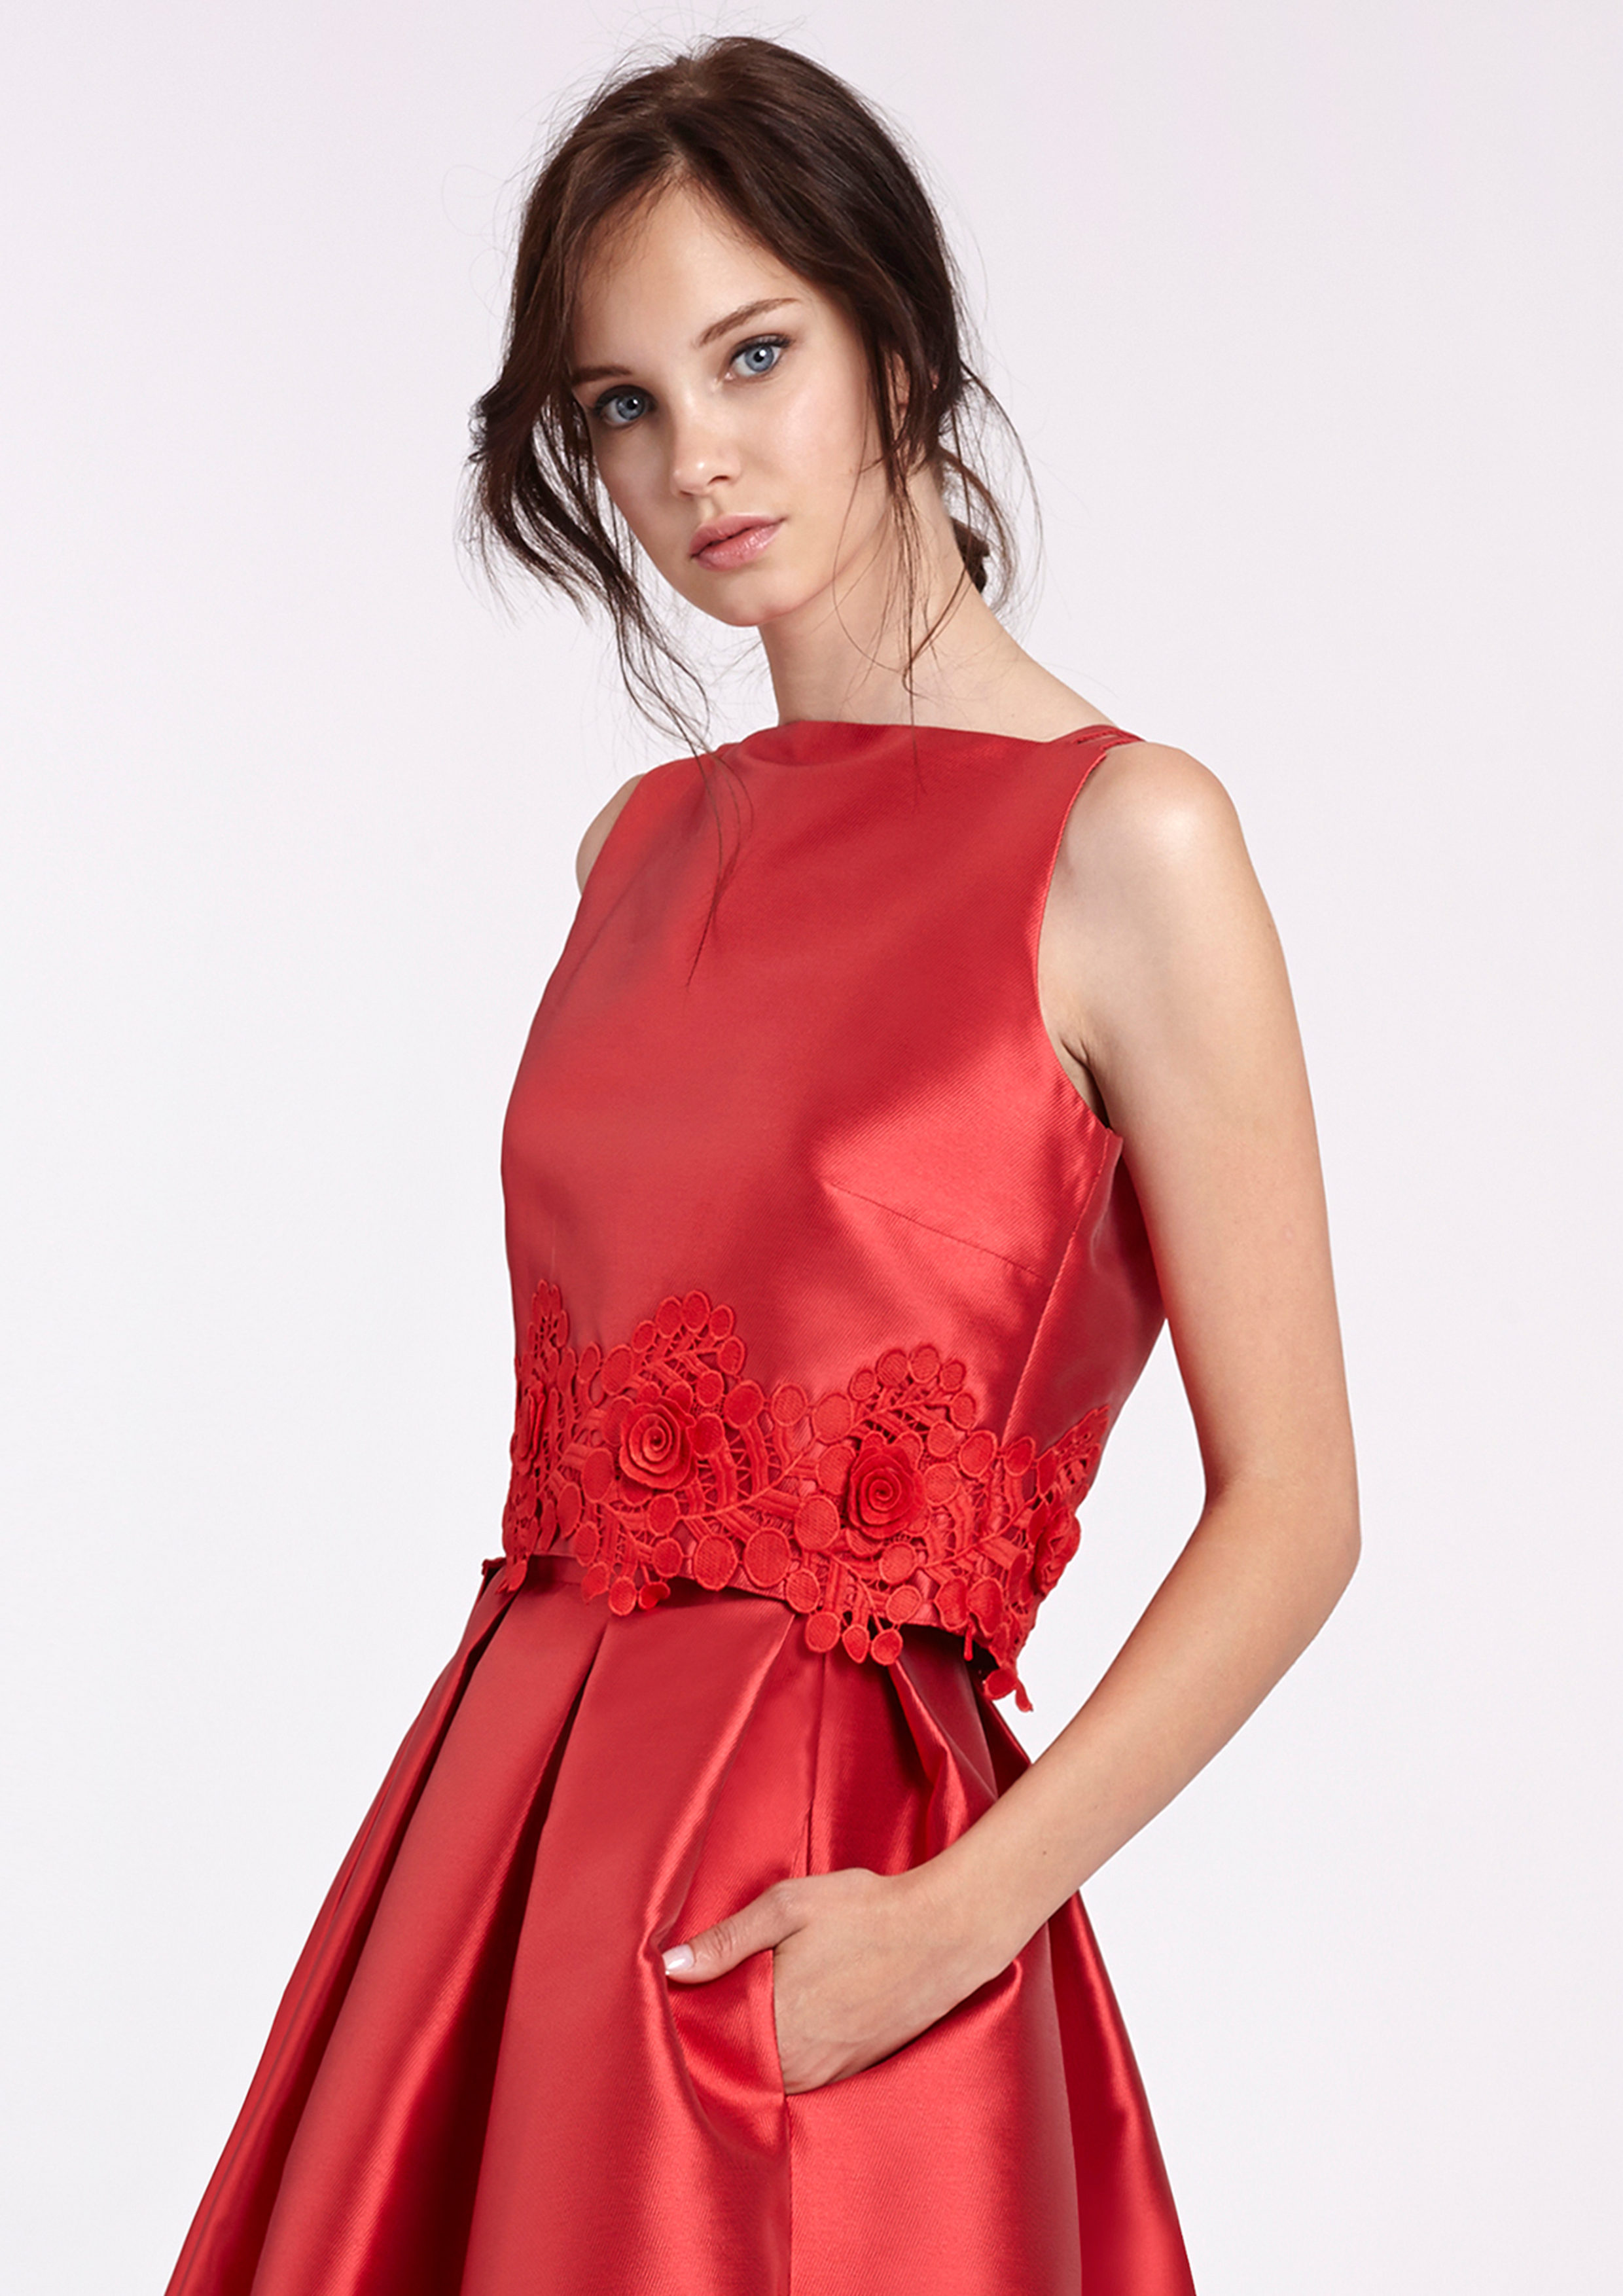 From elegant evening dresses to club and party dresses, bebe has the perfect style for you. Browse a variety of sexy cocktail dresses with special details like .